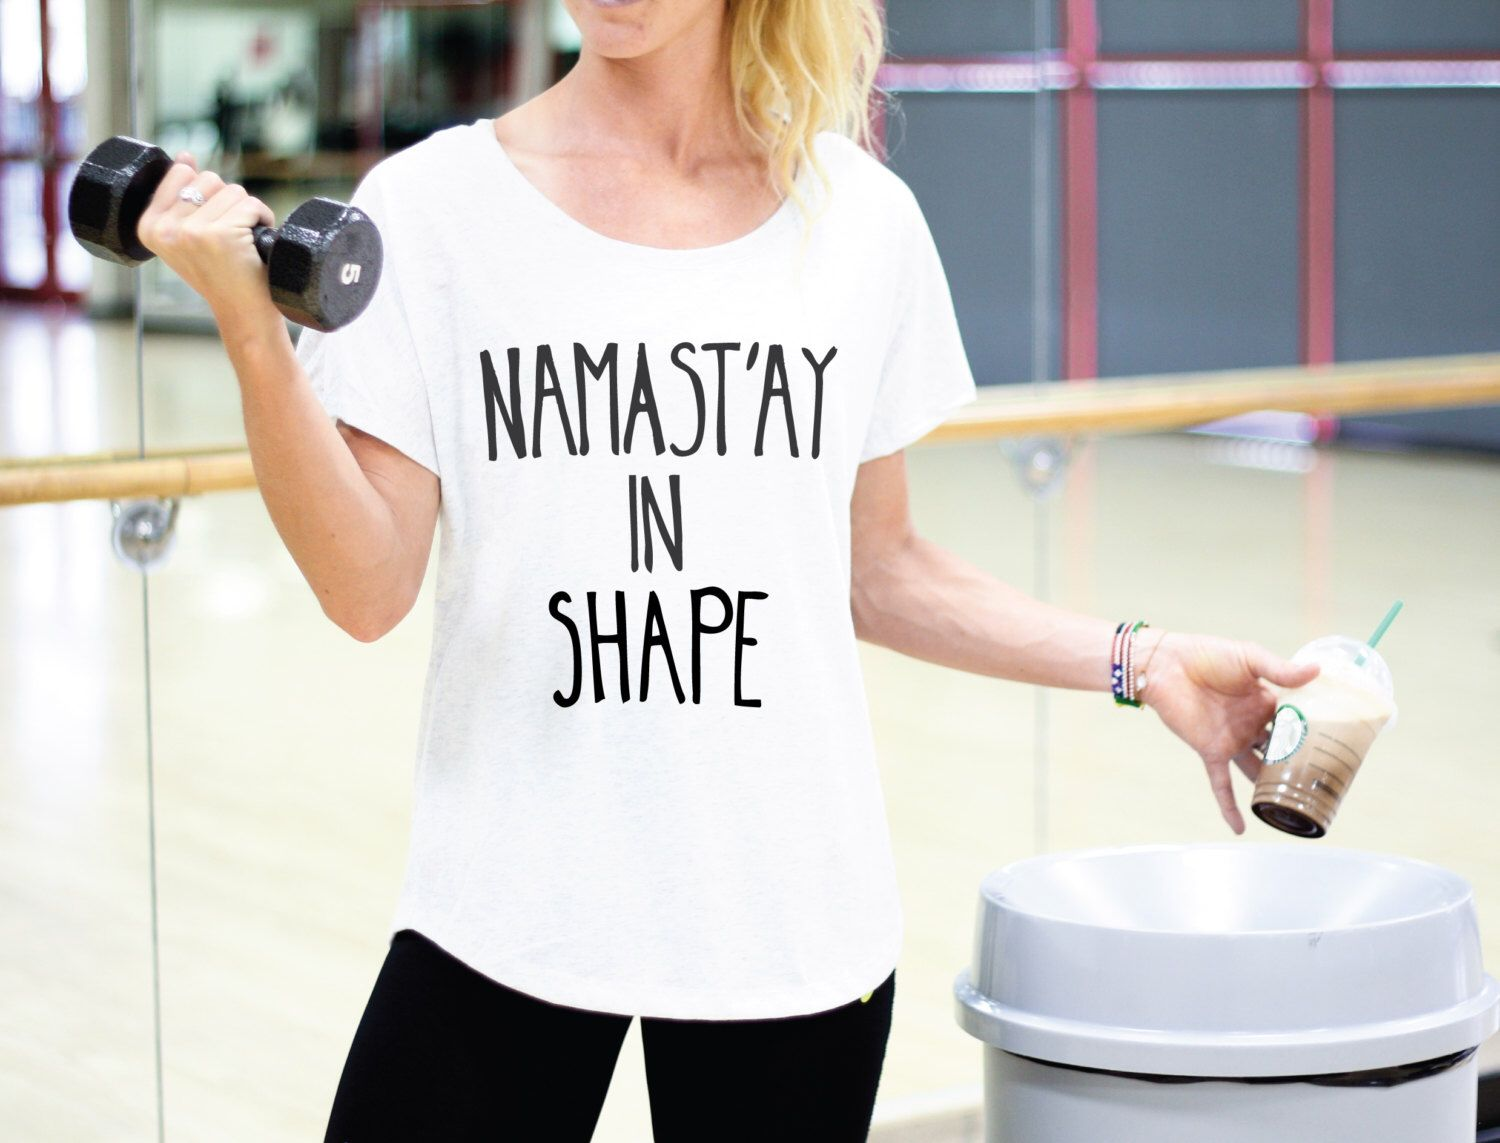 New Years Shirt - Funny New Years Shirt - Yoga Shirt - Yoga Clothes - Yoga Tank - New Years Resolution - Namastay In Shape - Namaste In Bed door ArimaDesigns op Etsy https://www.etsy.com/nl/listing/261683978/new-years-shirt-funny-new-years-shirt